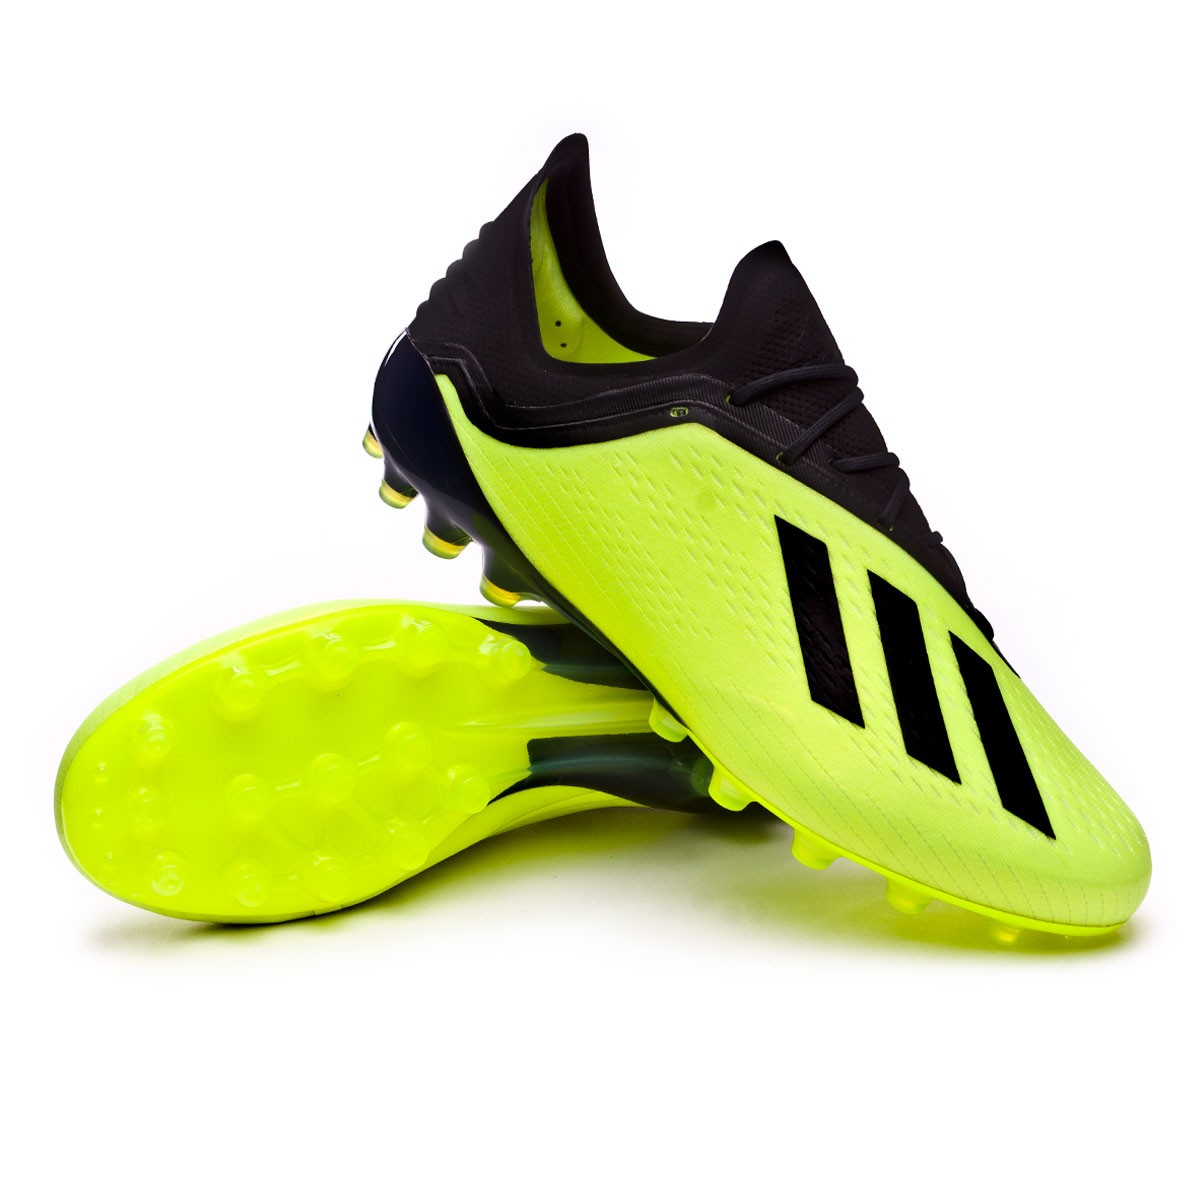 sports shoes 3f223 a739d Football Boots adidas X 18.1 AG Solar yellow-Core black-White - Football  store Fútbol Emotion